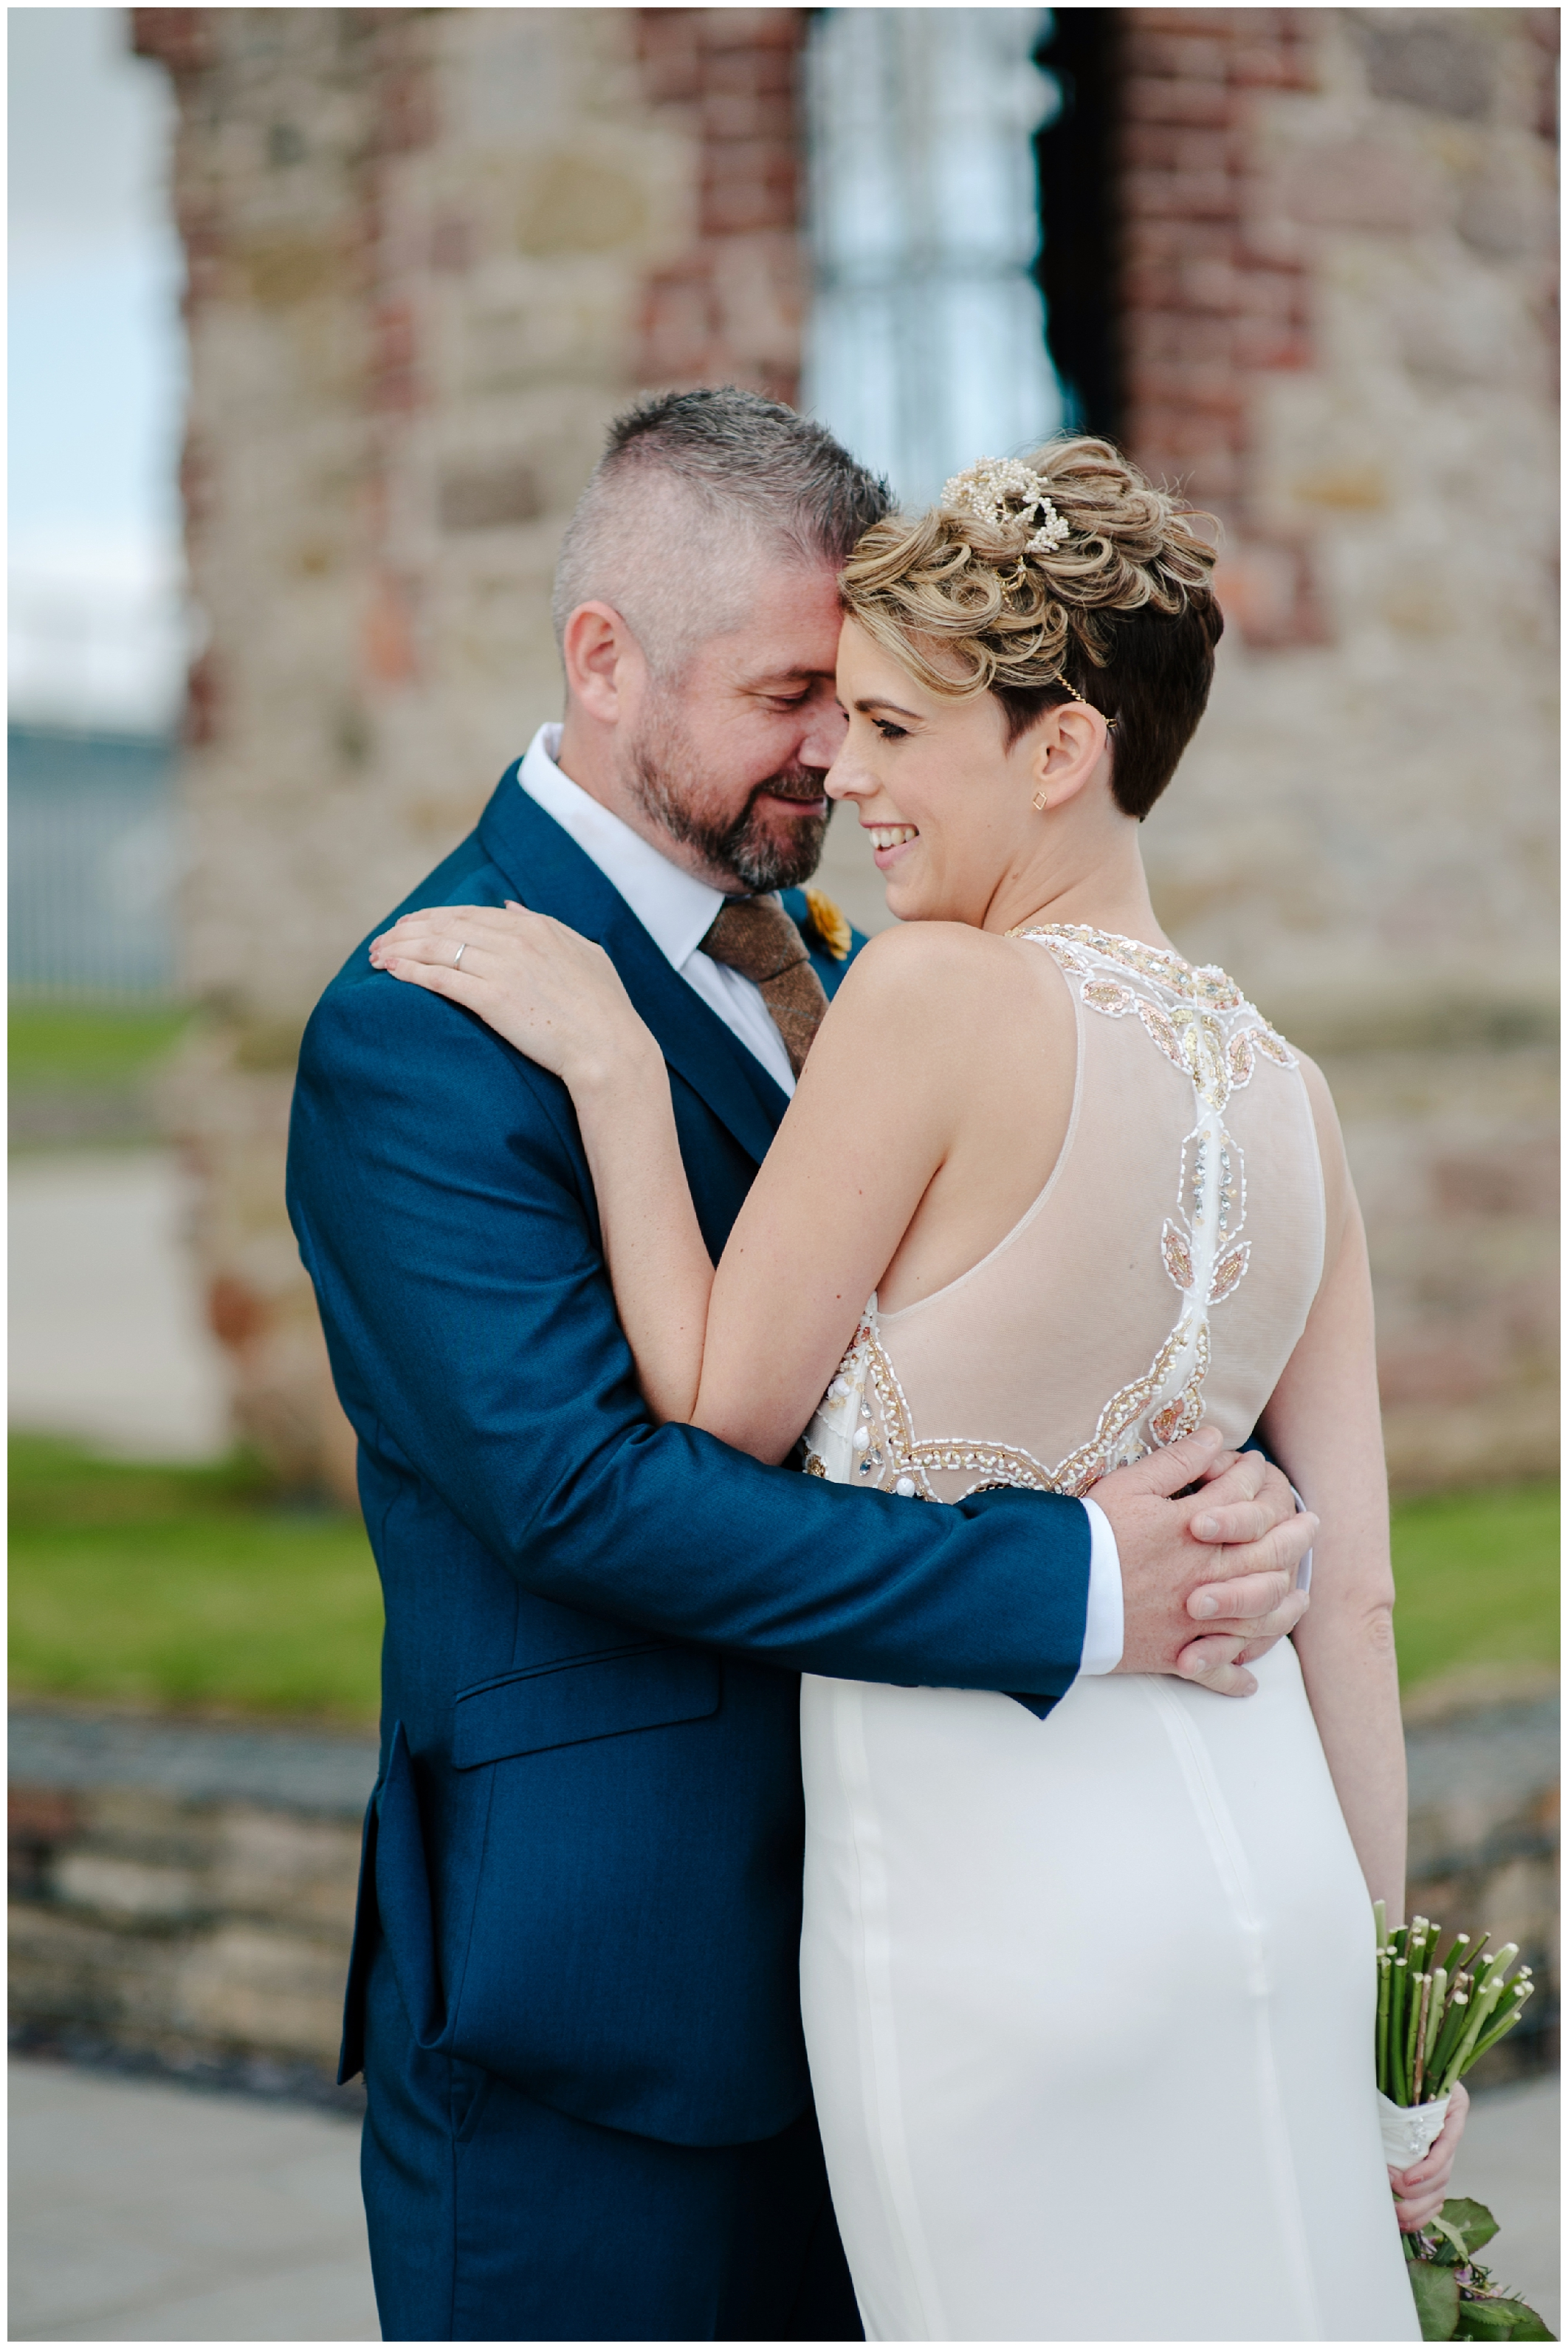 christina_stephen_hill_of_the_oneill_dungannon_wedding_jude_browne_photography_0044.jpg